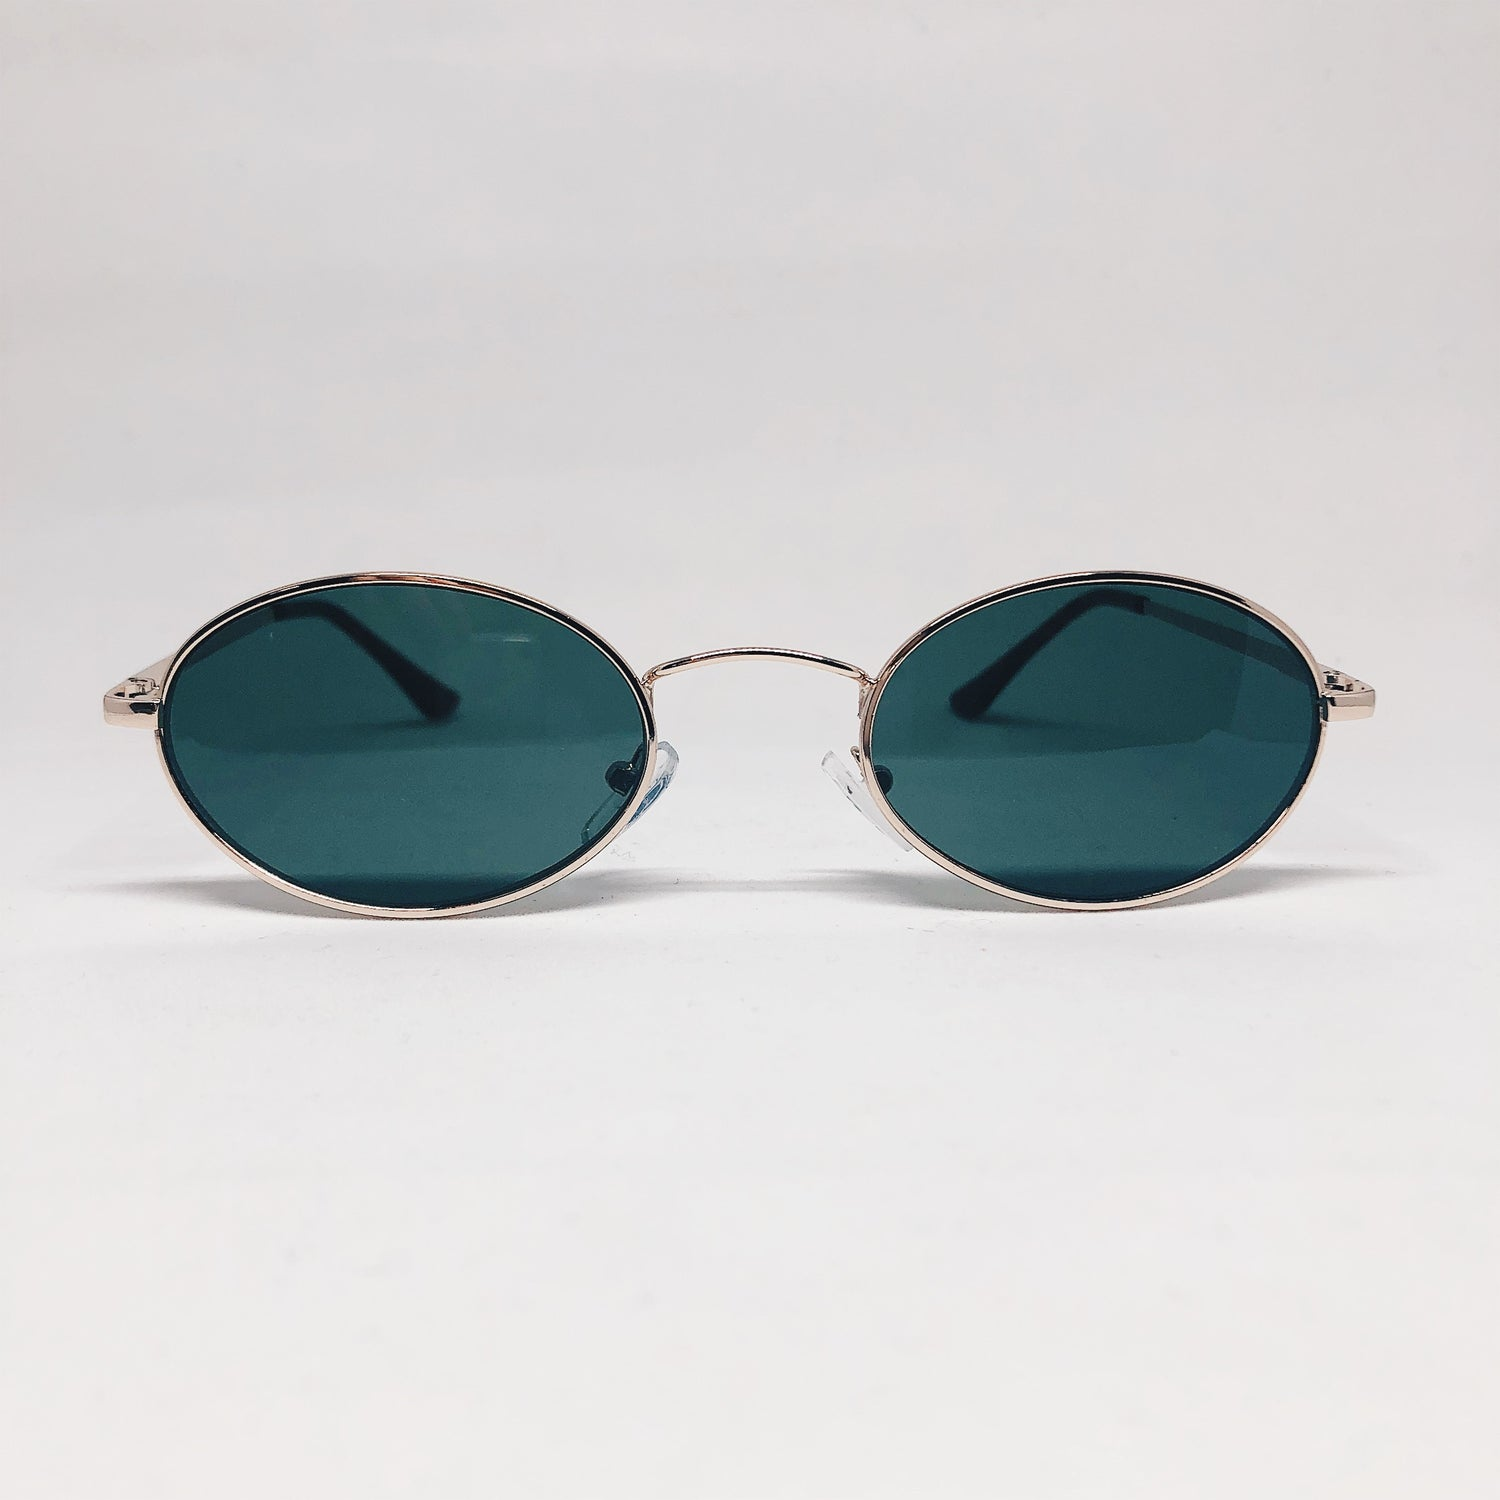 Fellini Sunglasses